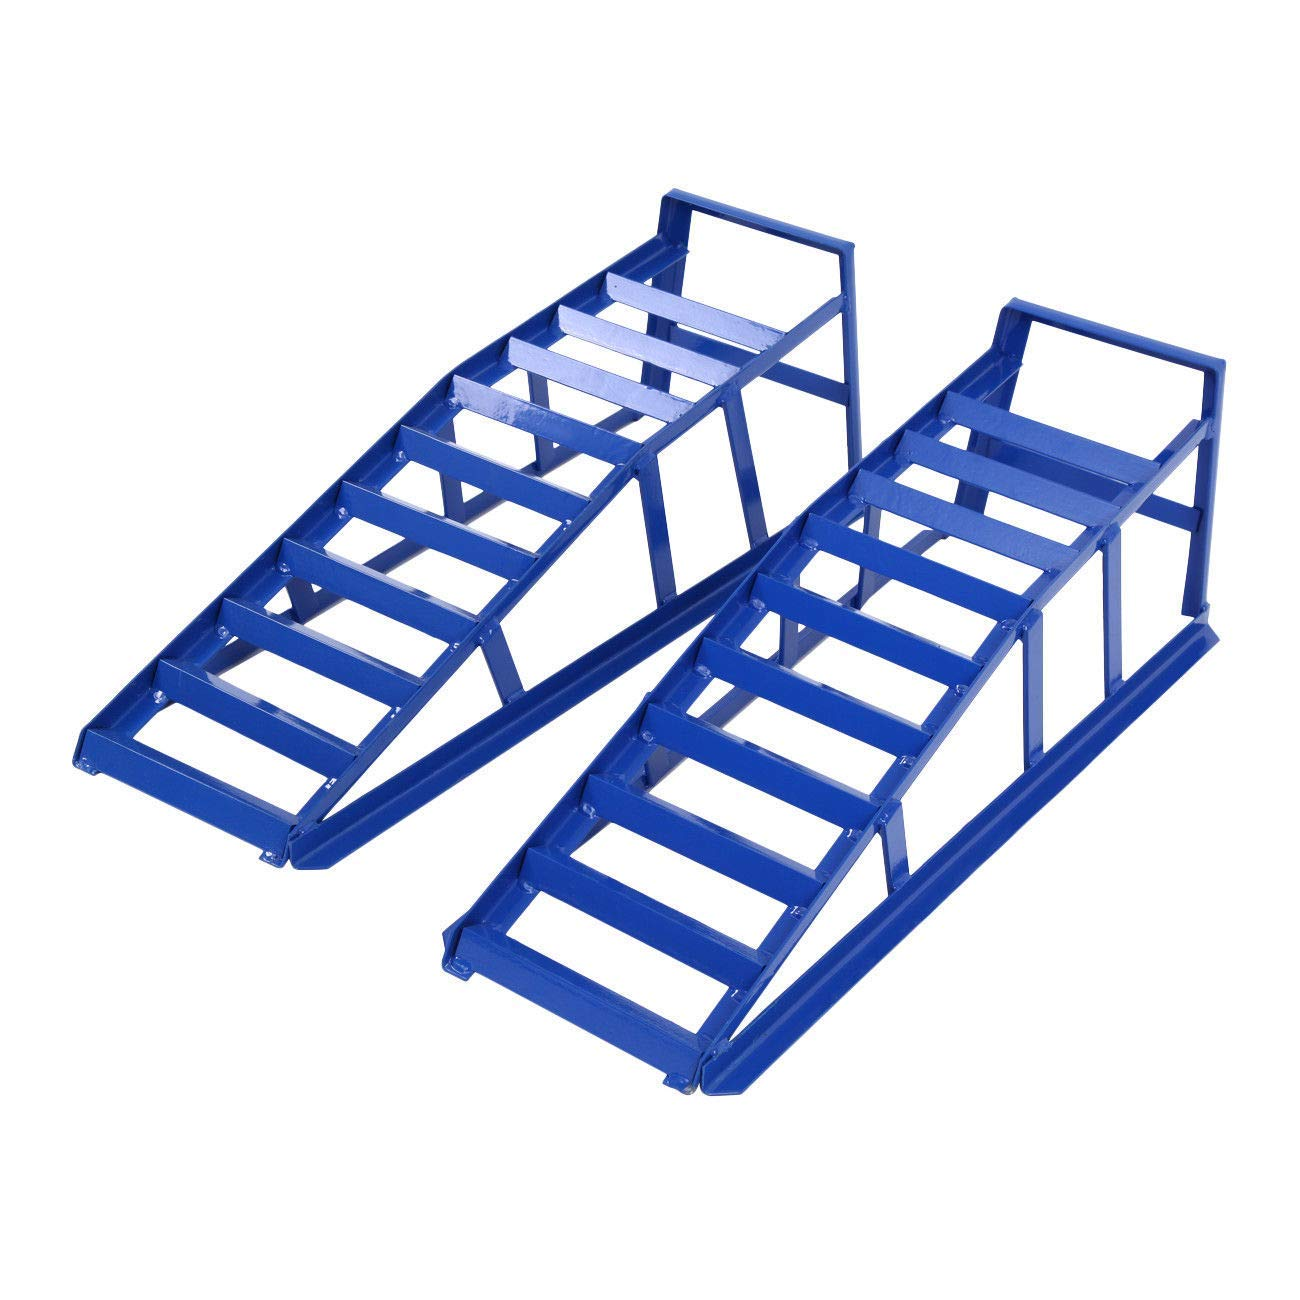 Samger 2Ton Steel Car Access Ramps Loading Ramp Heavy Duty Maintenance Lifting Equipment Blue